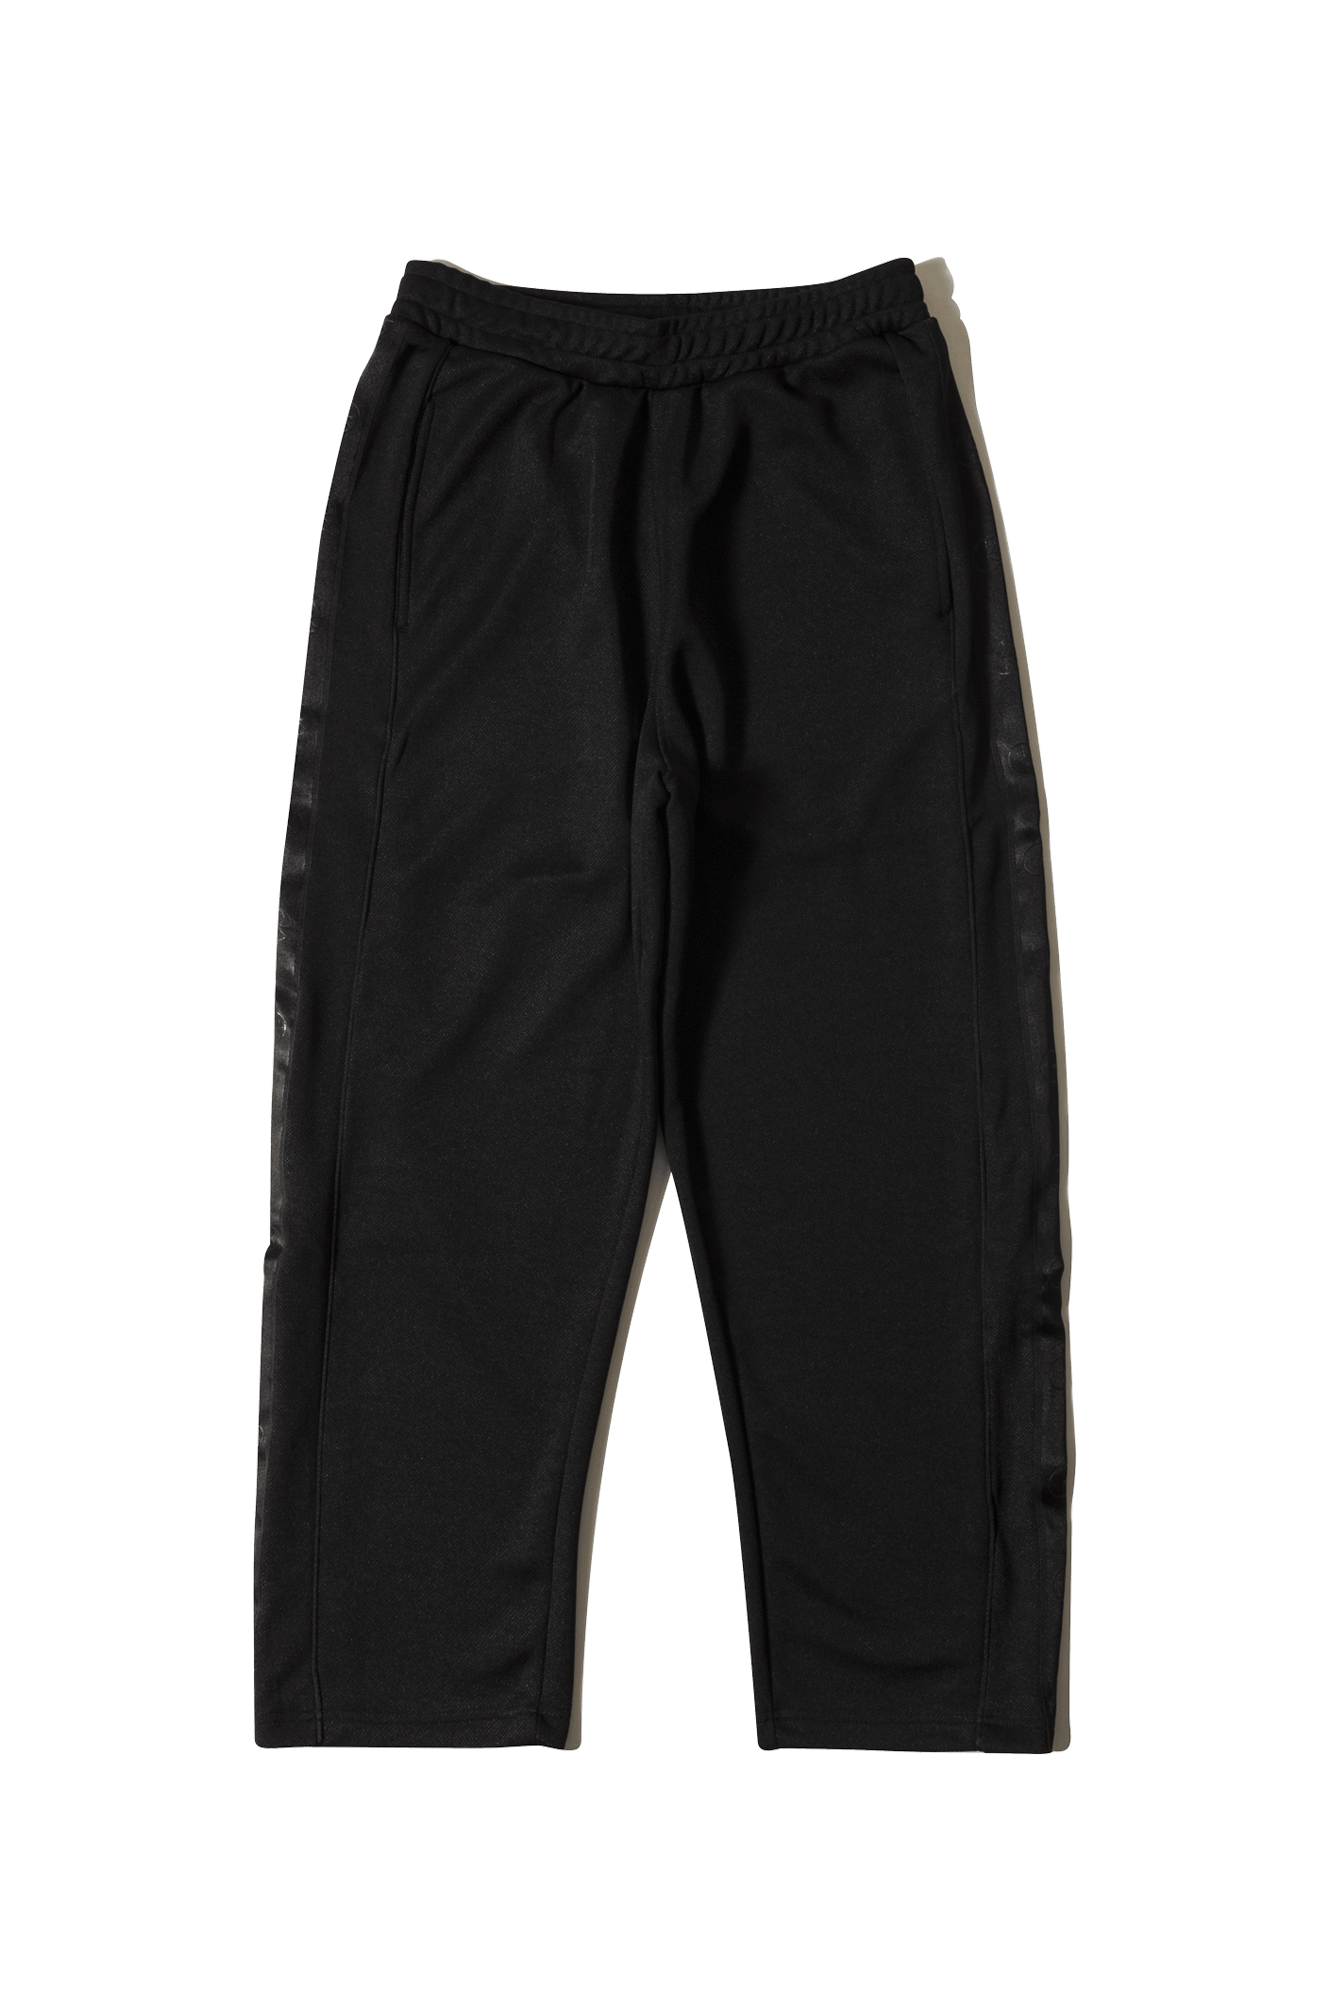 Trousers Polar Track Pants Black - One Block Down